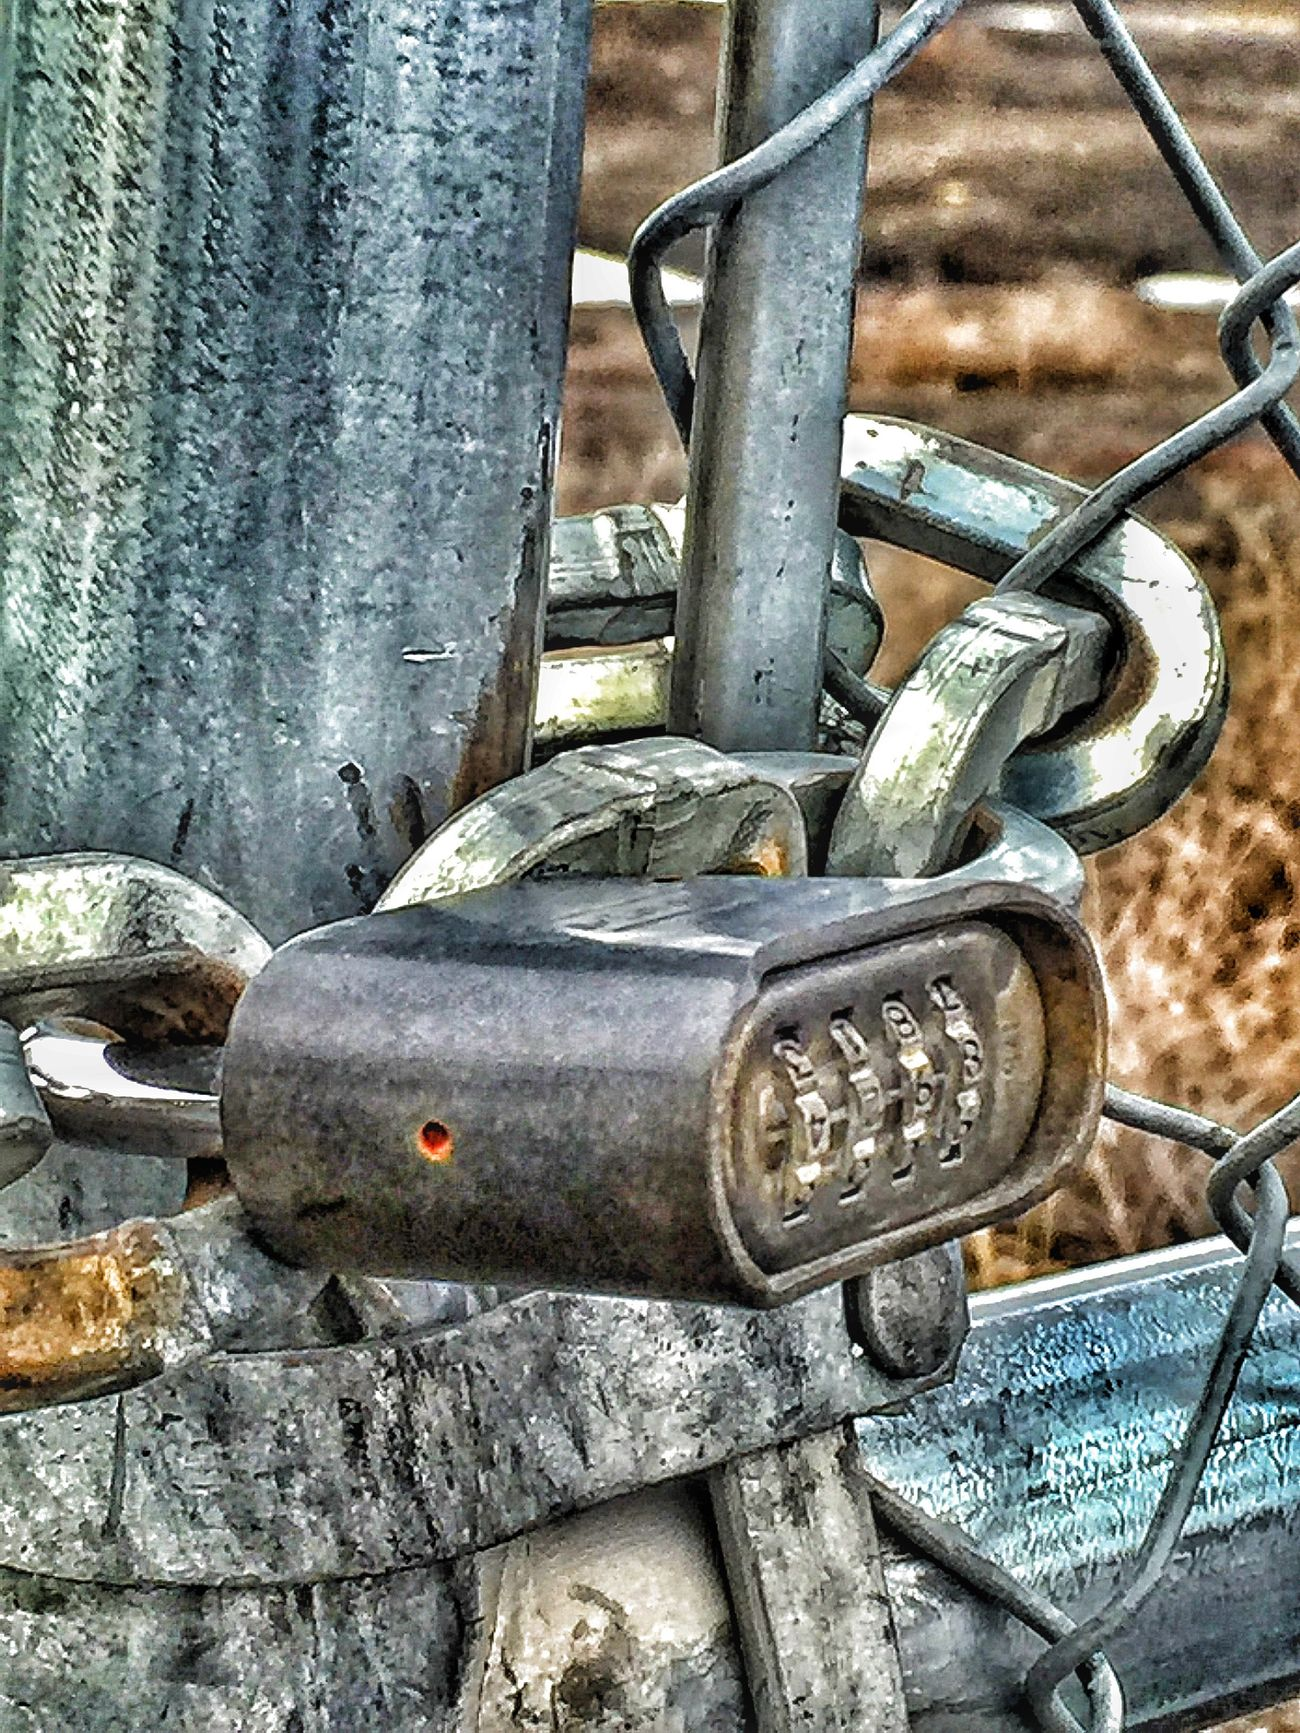 Security is key...just like happiness it's an inside job! ✔️ EyeEm Happy Unconditional Love Nothing Can Break My Stride Good To Go Acceptance Struggles Are Signs Of Redirection Living In The Moment Shining Bright Like A Diamond Spreading The Love Broading My Horizon This Girl Is On Fire  Strength Of A Solider Take Me Off Your Worry List Be Good To Yourself Locks To See My Locks Heart Is Happy Eye4photography  Going With The Flow Love And Light Not That Girl You First Met-GROWTH Trusting My Direction Inspired Daily Wide Awake ✌